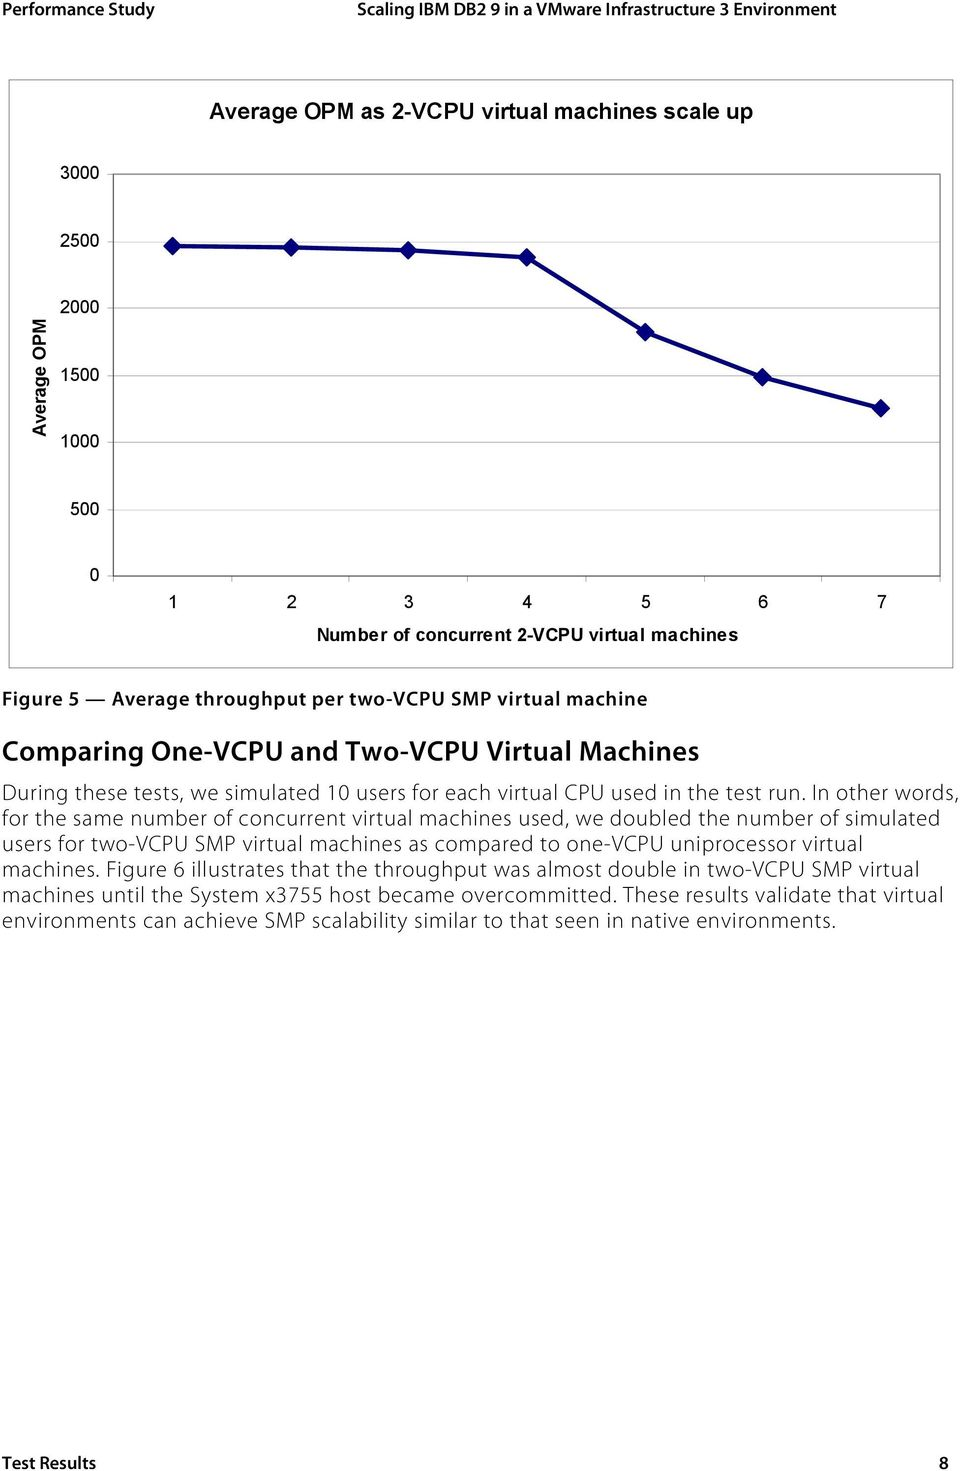 In other words, for the same number of concurrent virtual machines used, we doubled the number of simulated users for two-vcpu SMP virtual machines as compared to one-vcpu uniprocessor virtual